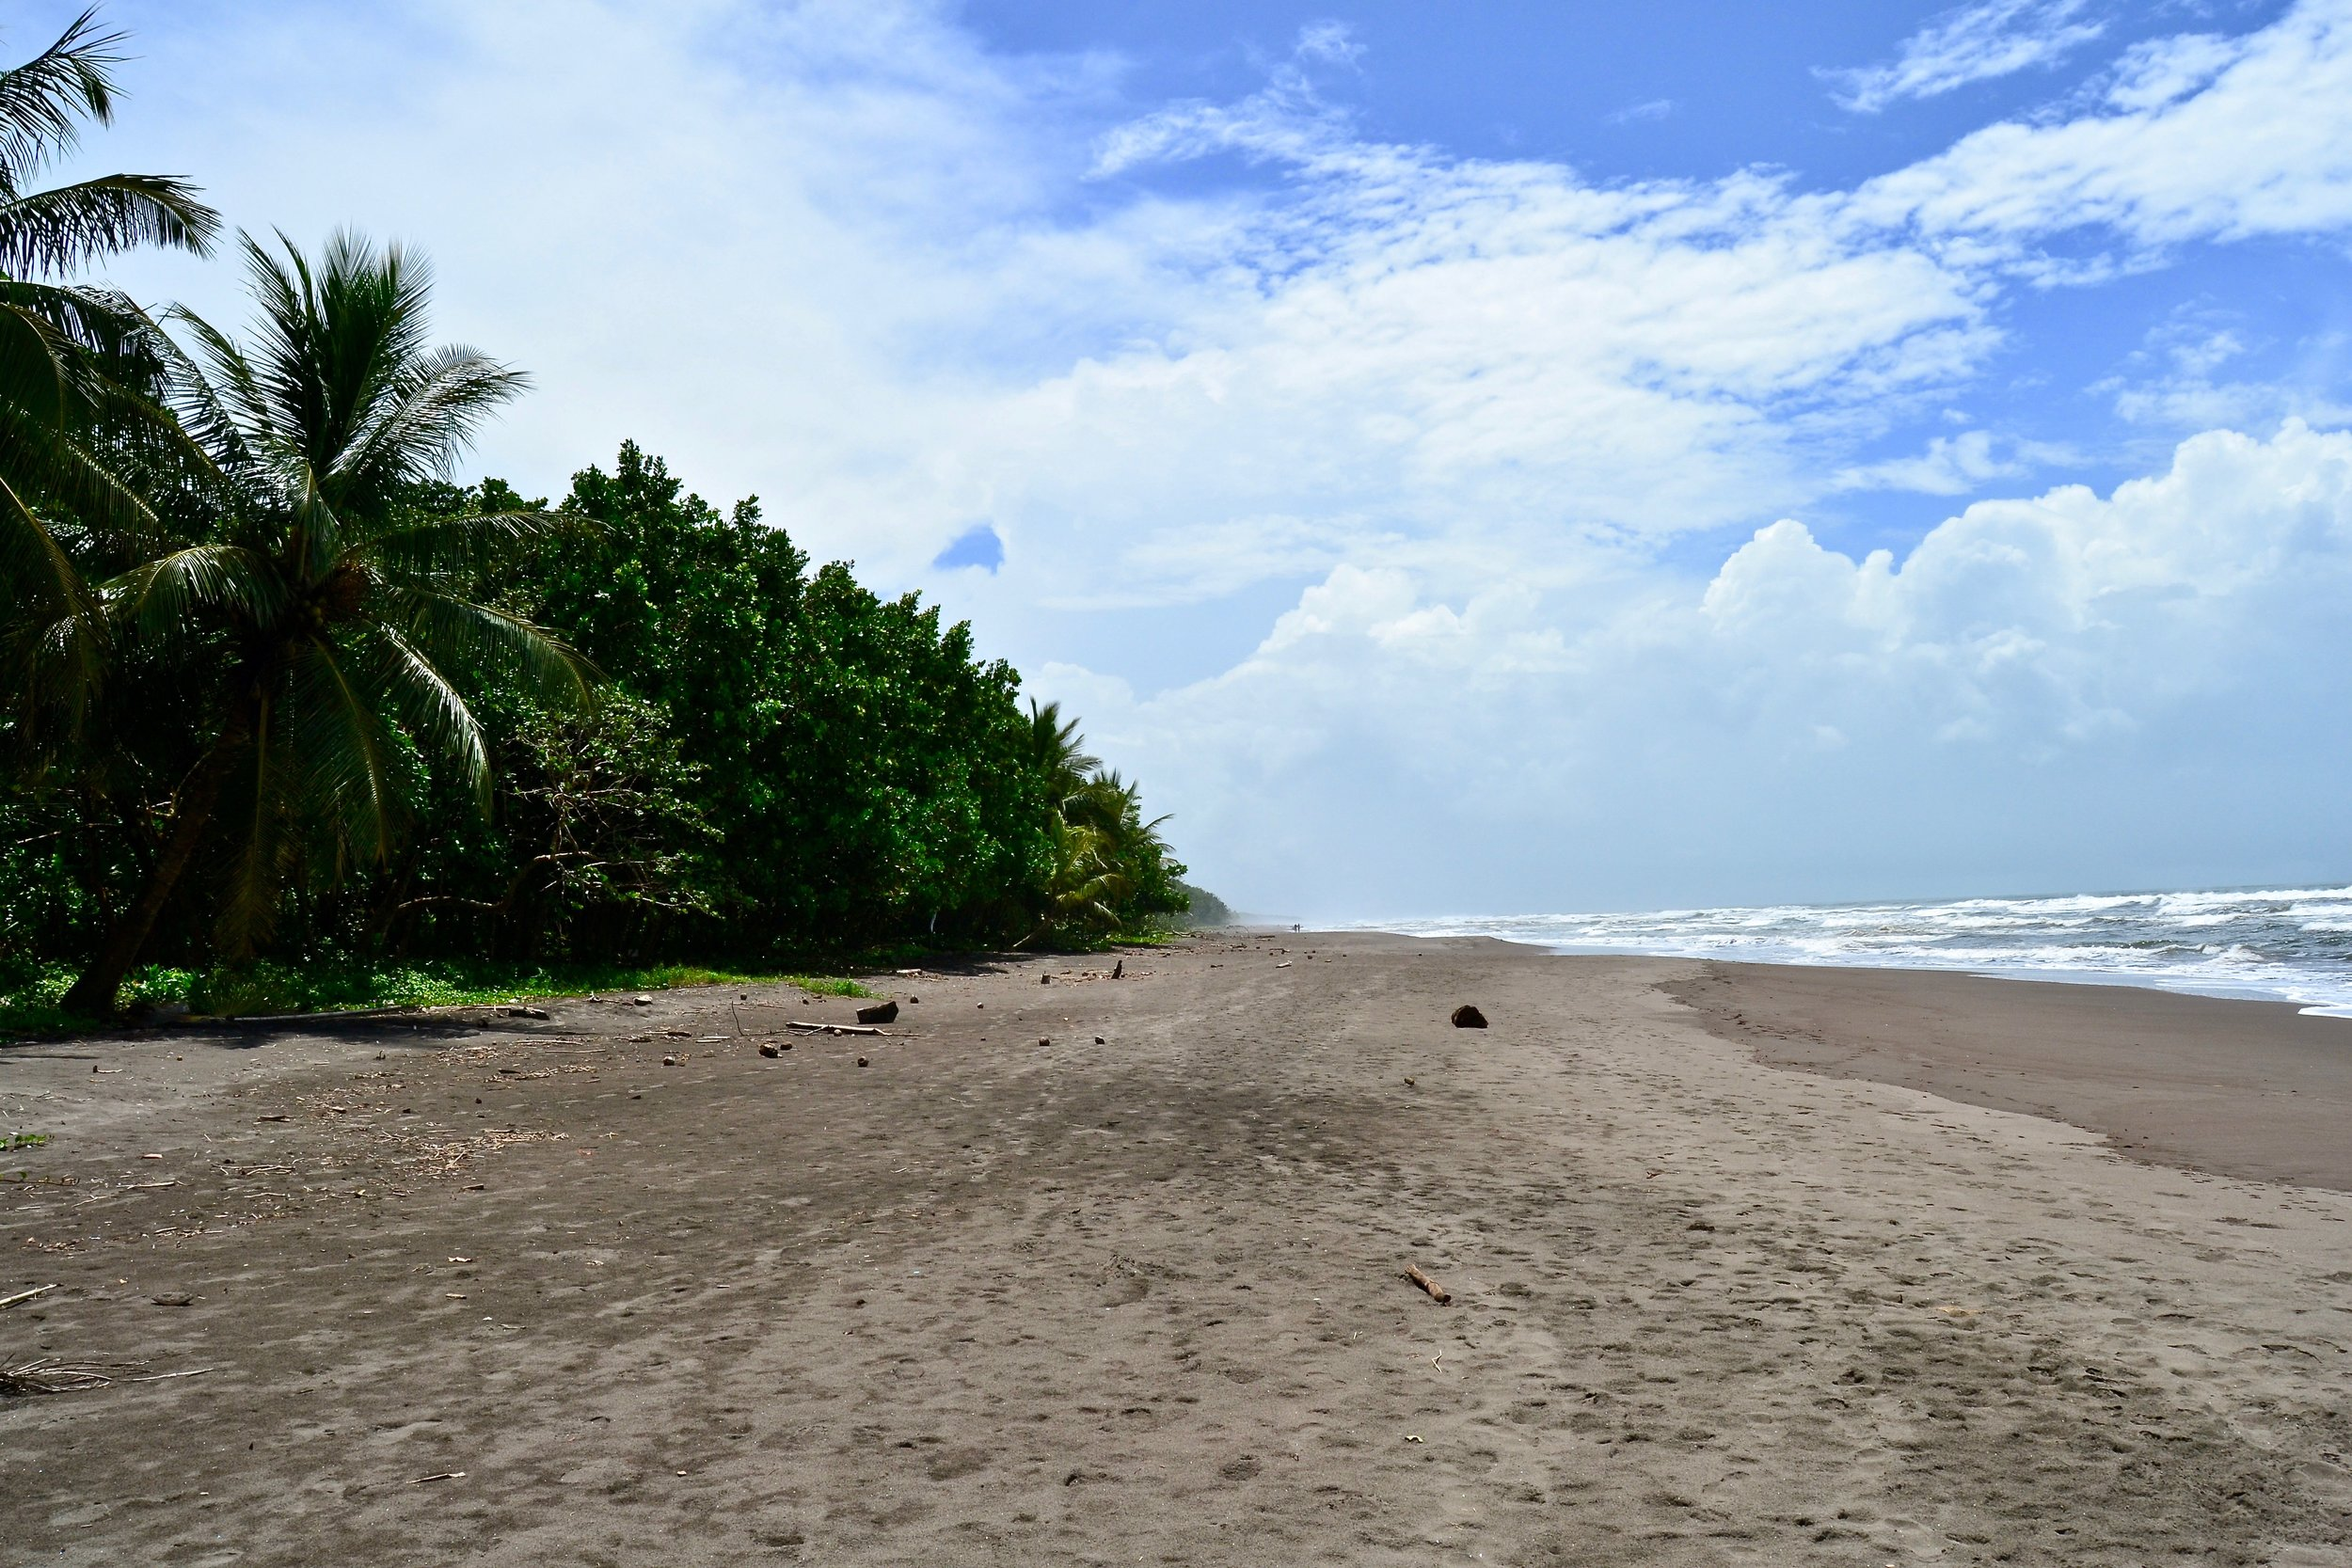 A view of the coast of Costa Rica in Tortuguero National Park